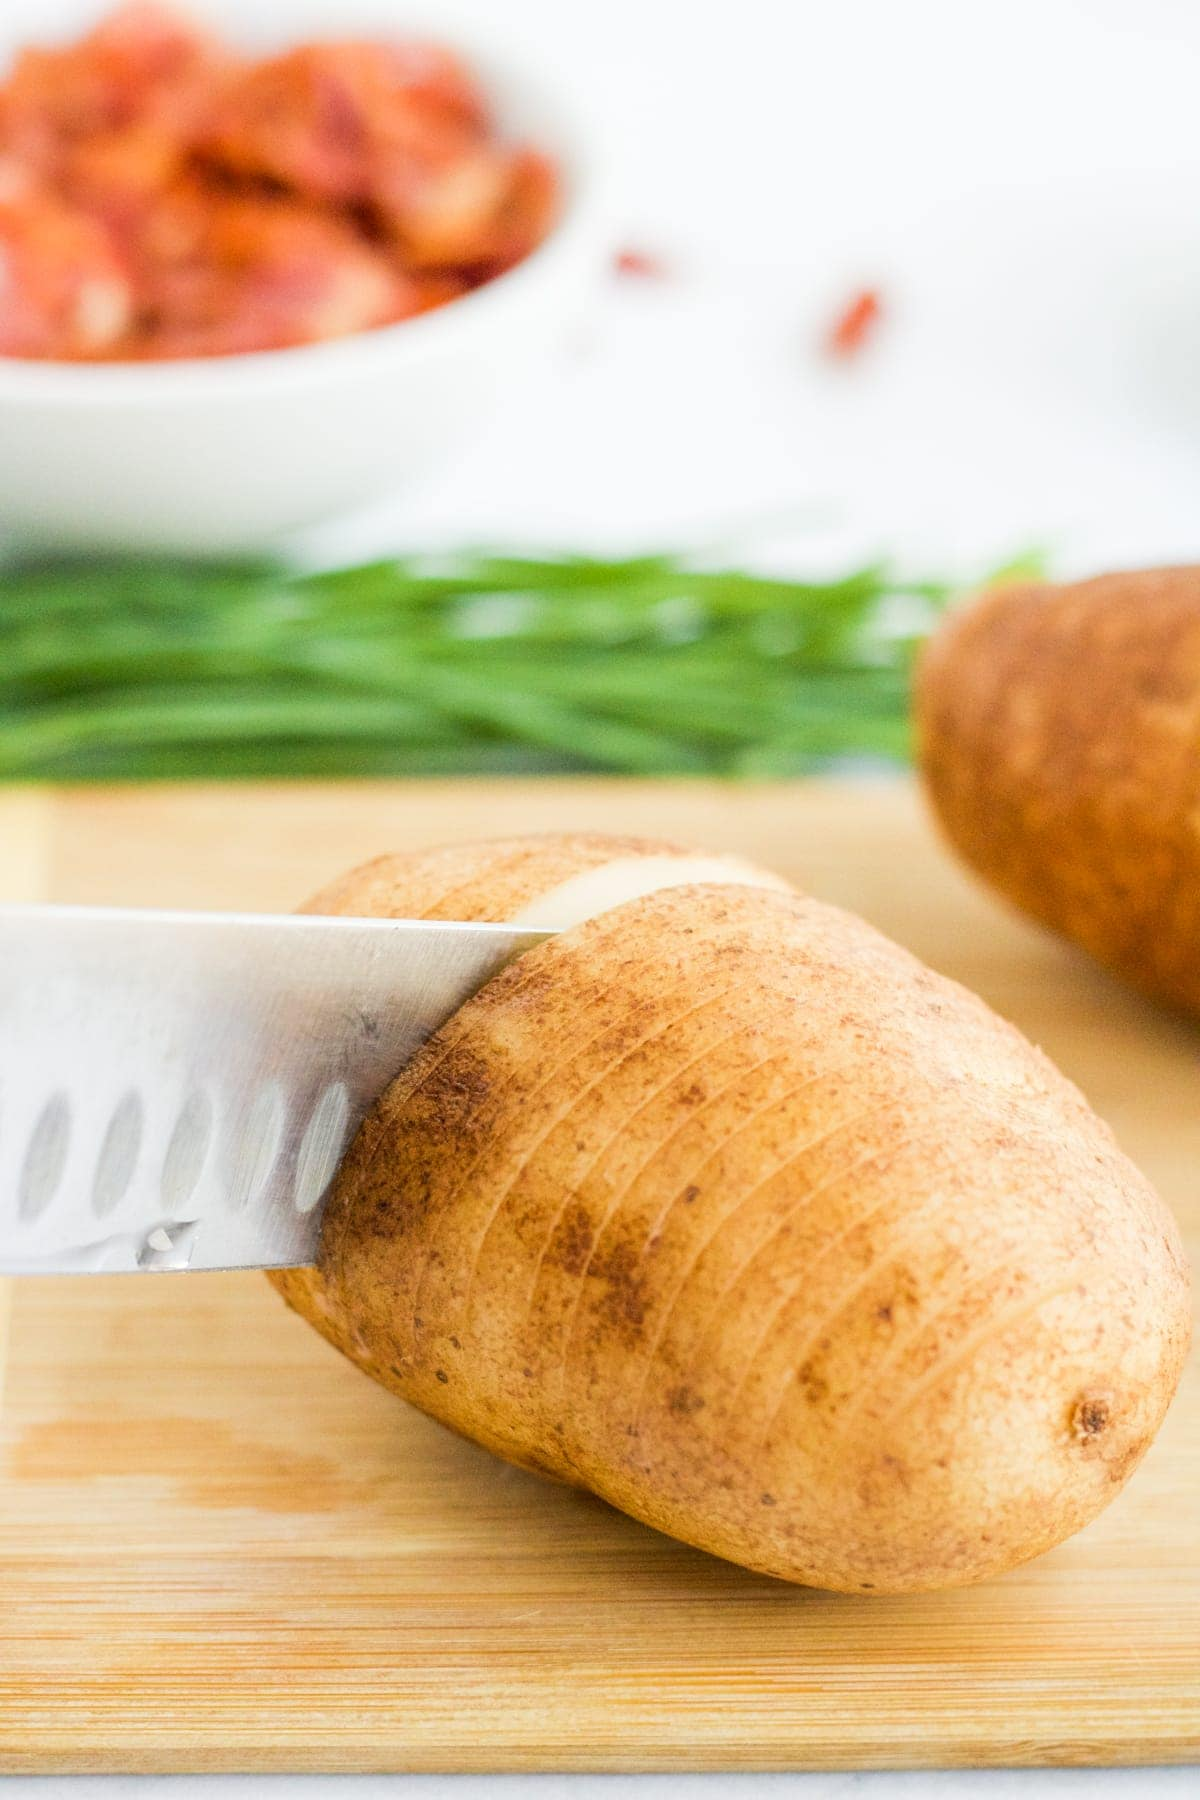 A russet potato being sliced to make Hasselback Potatoes